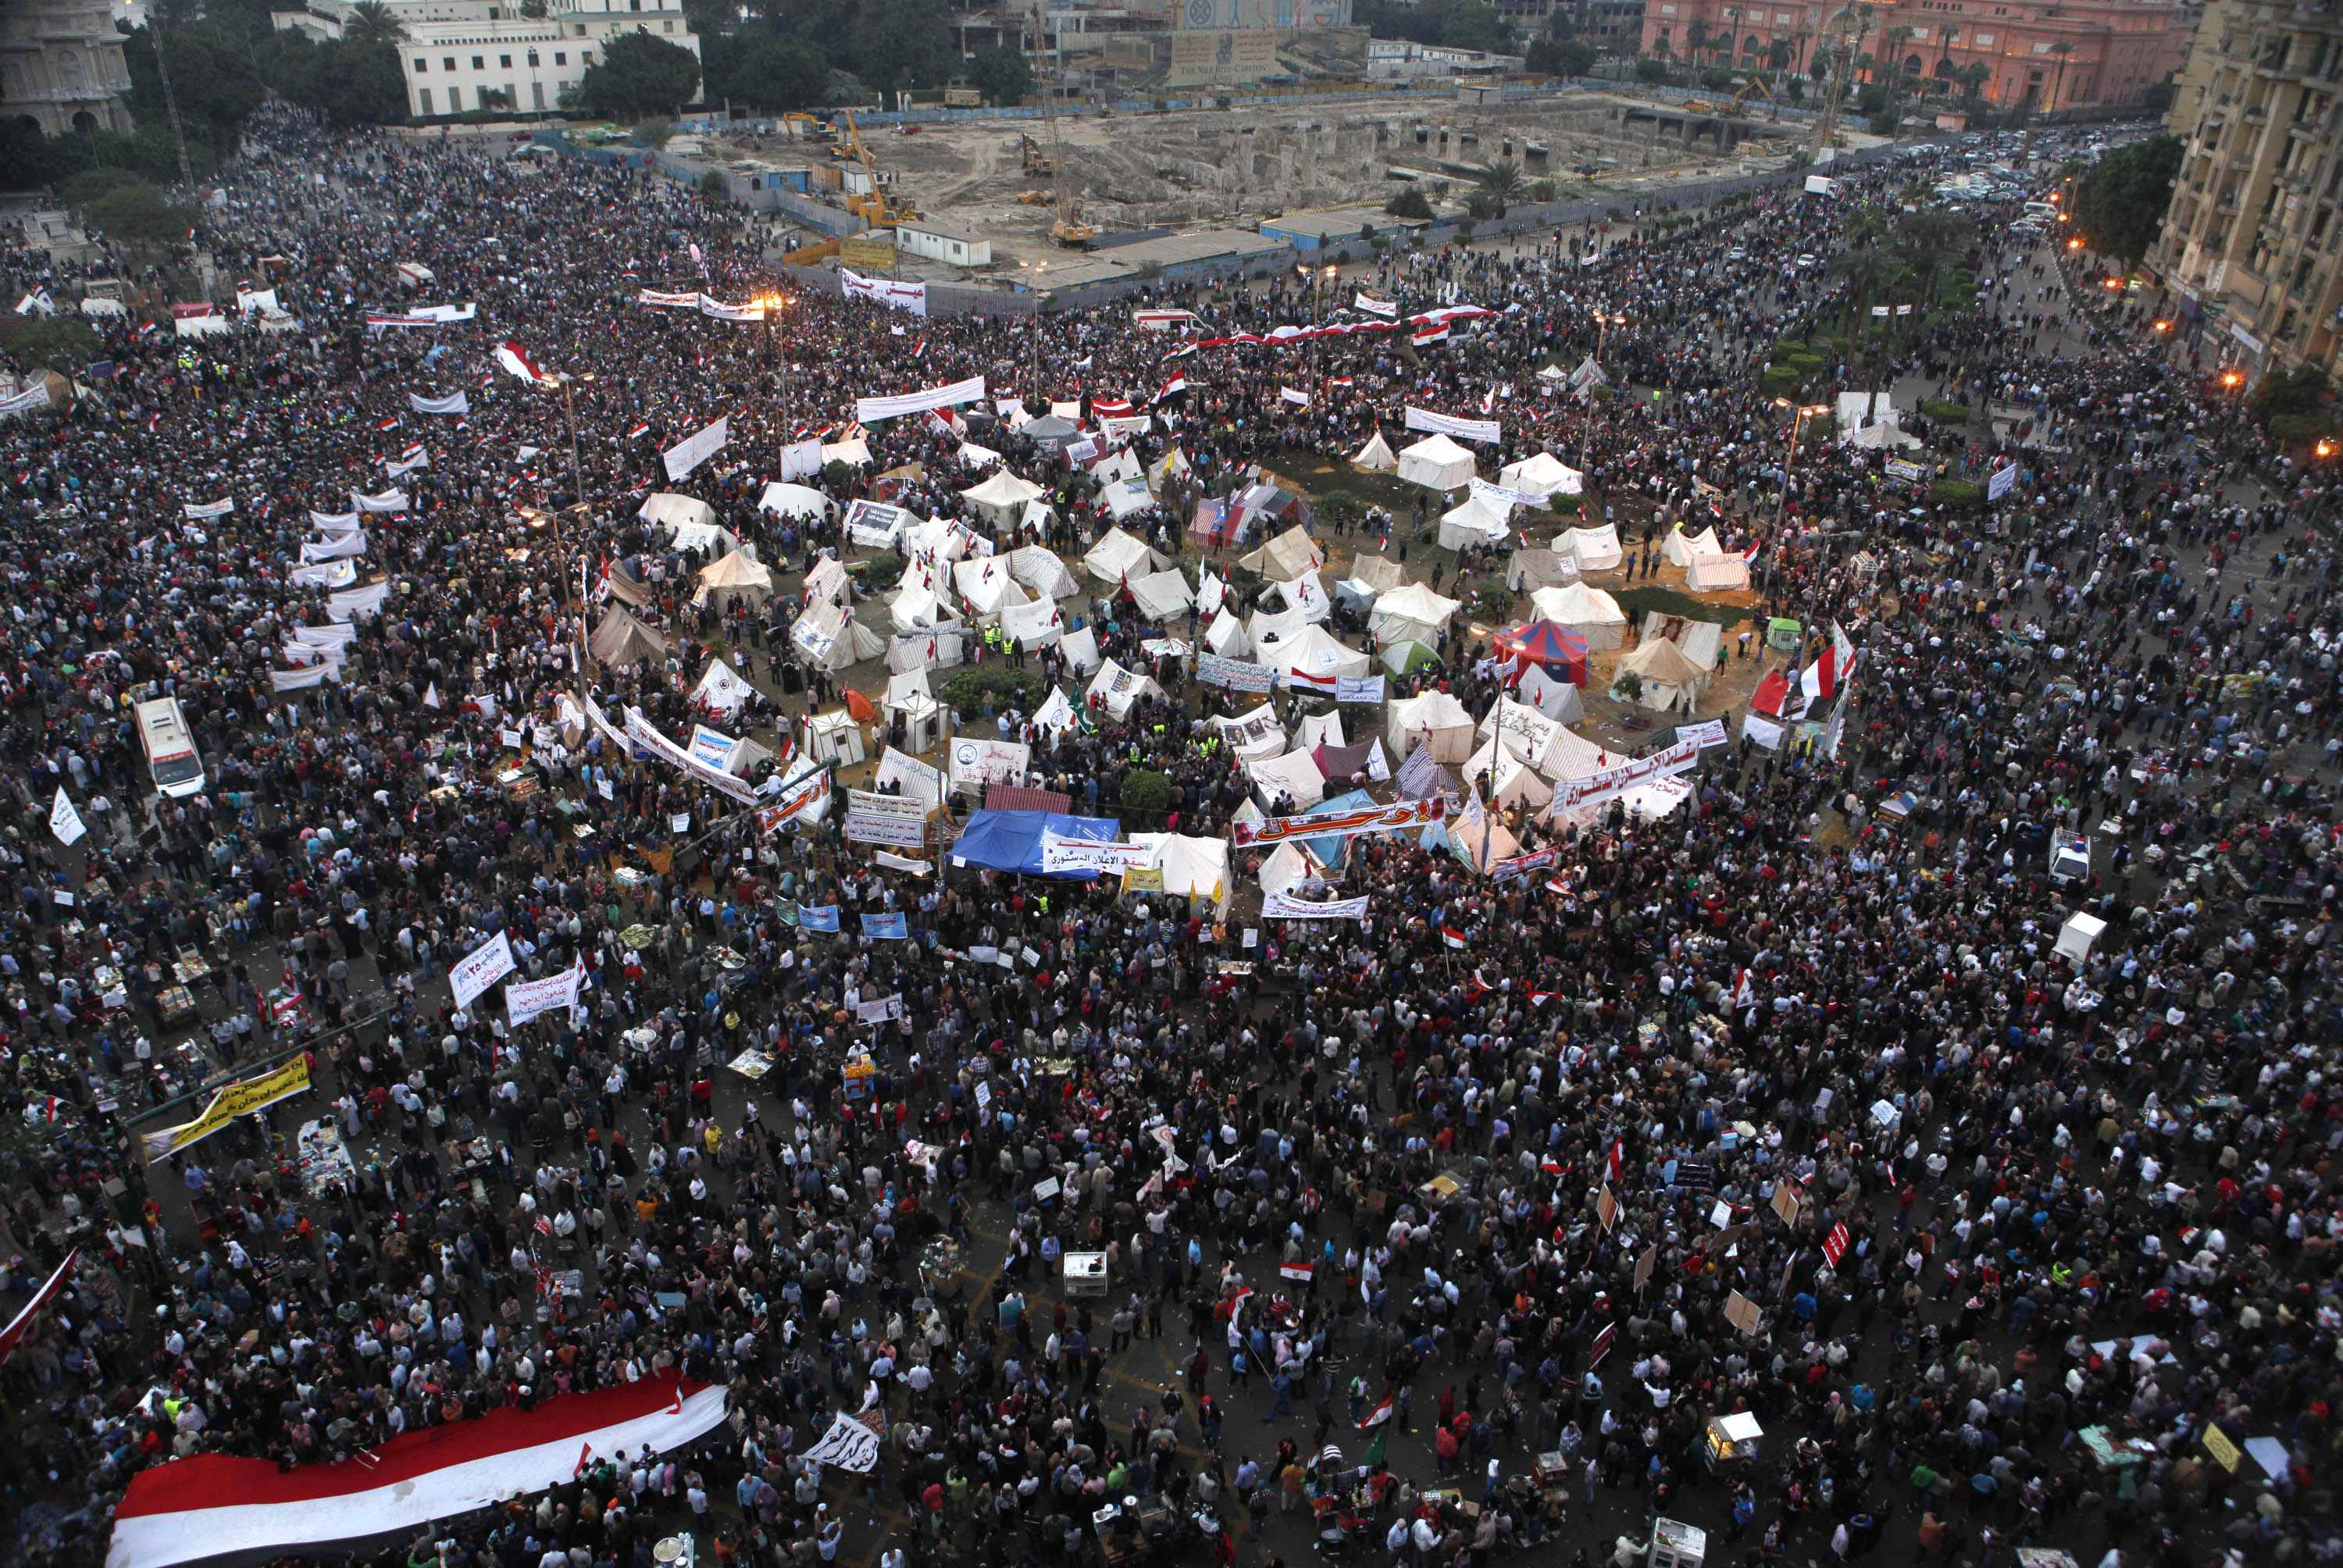 Thousands march to presidential palace against charter